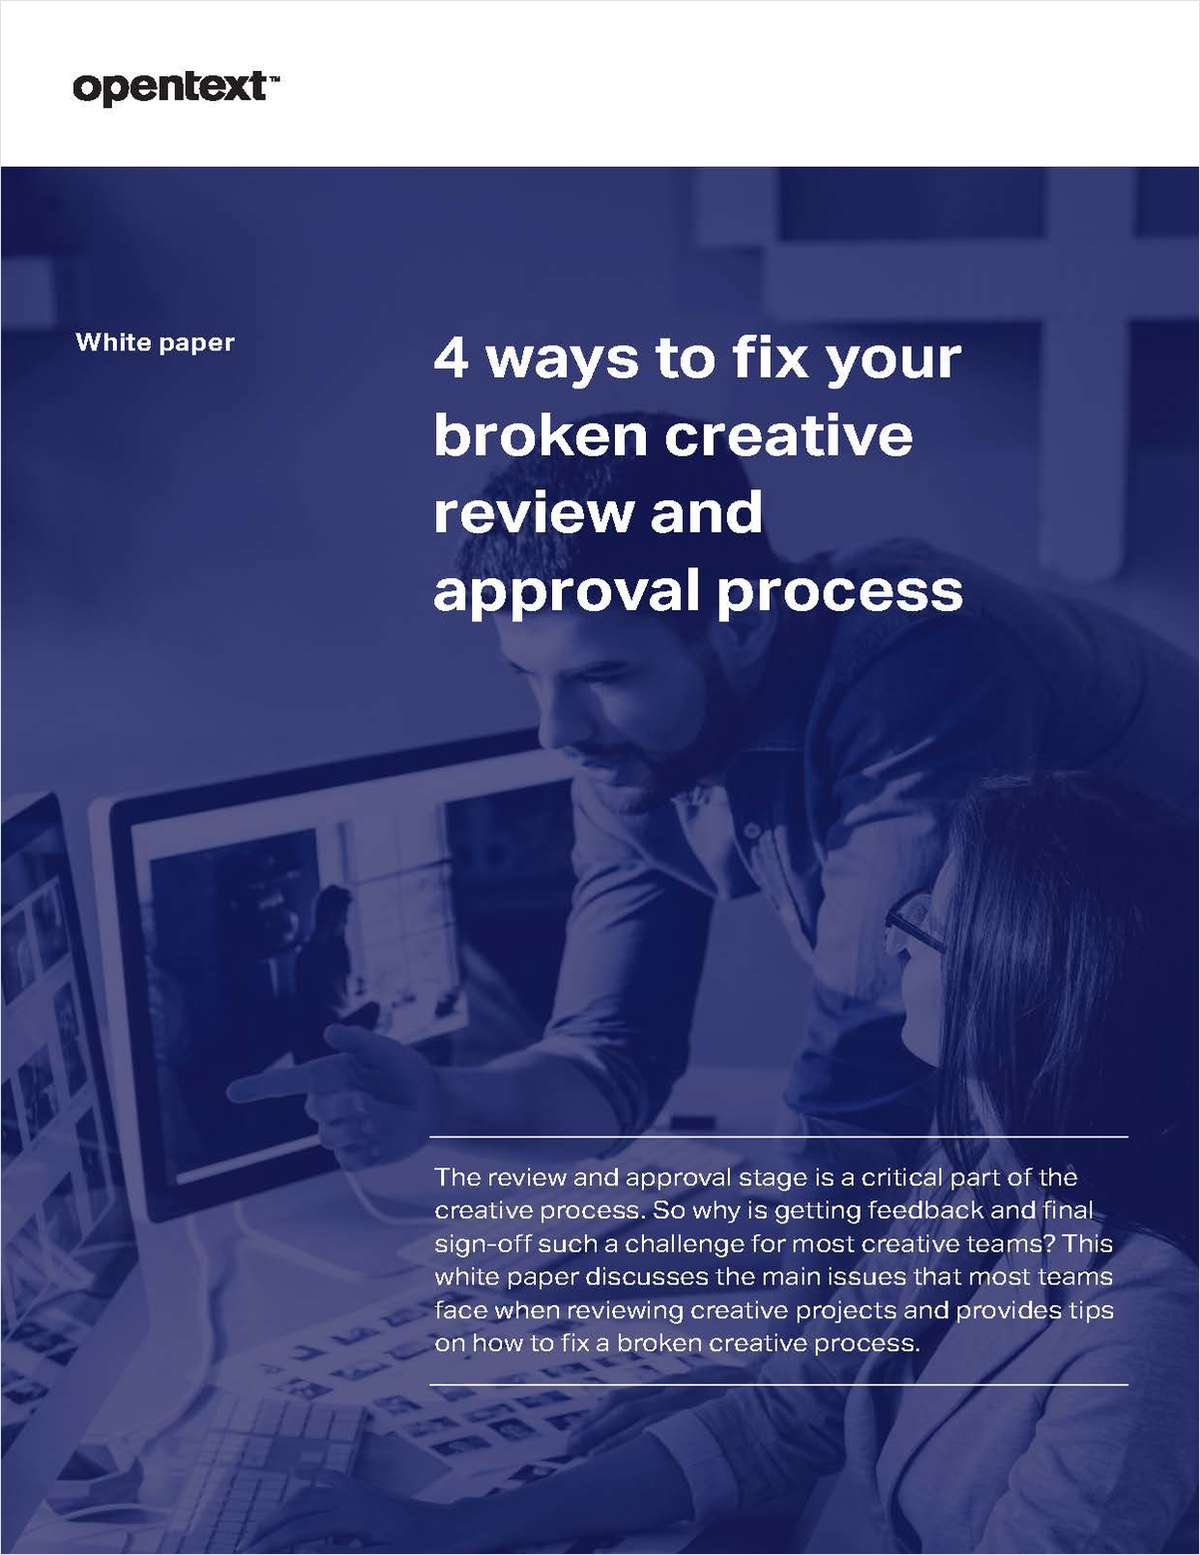 4 ways to fix your broken creative review and approval process